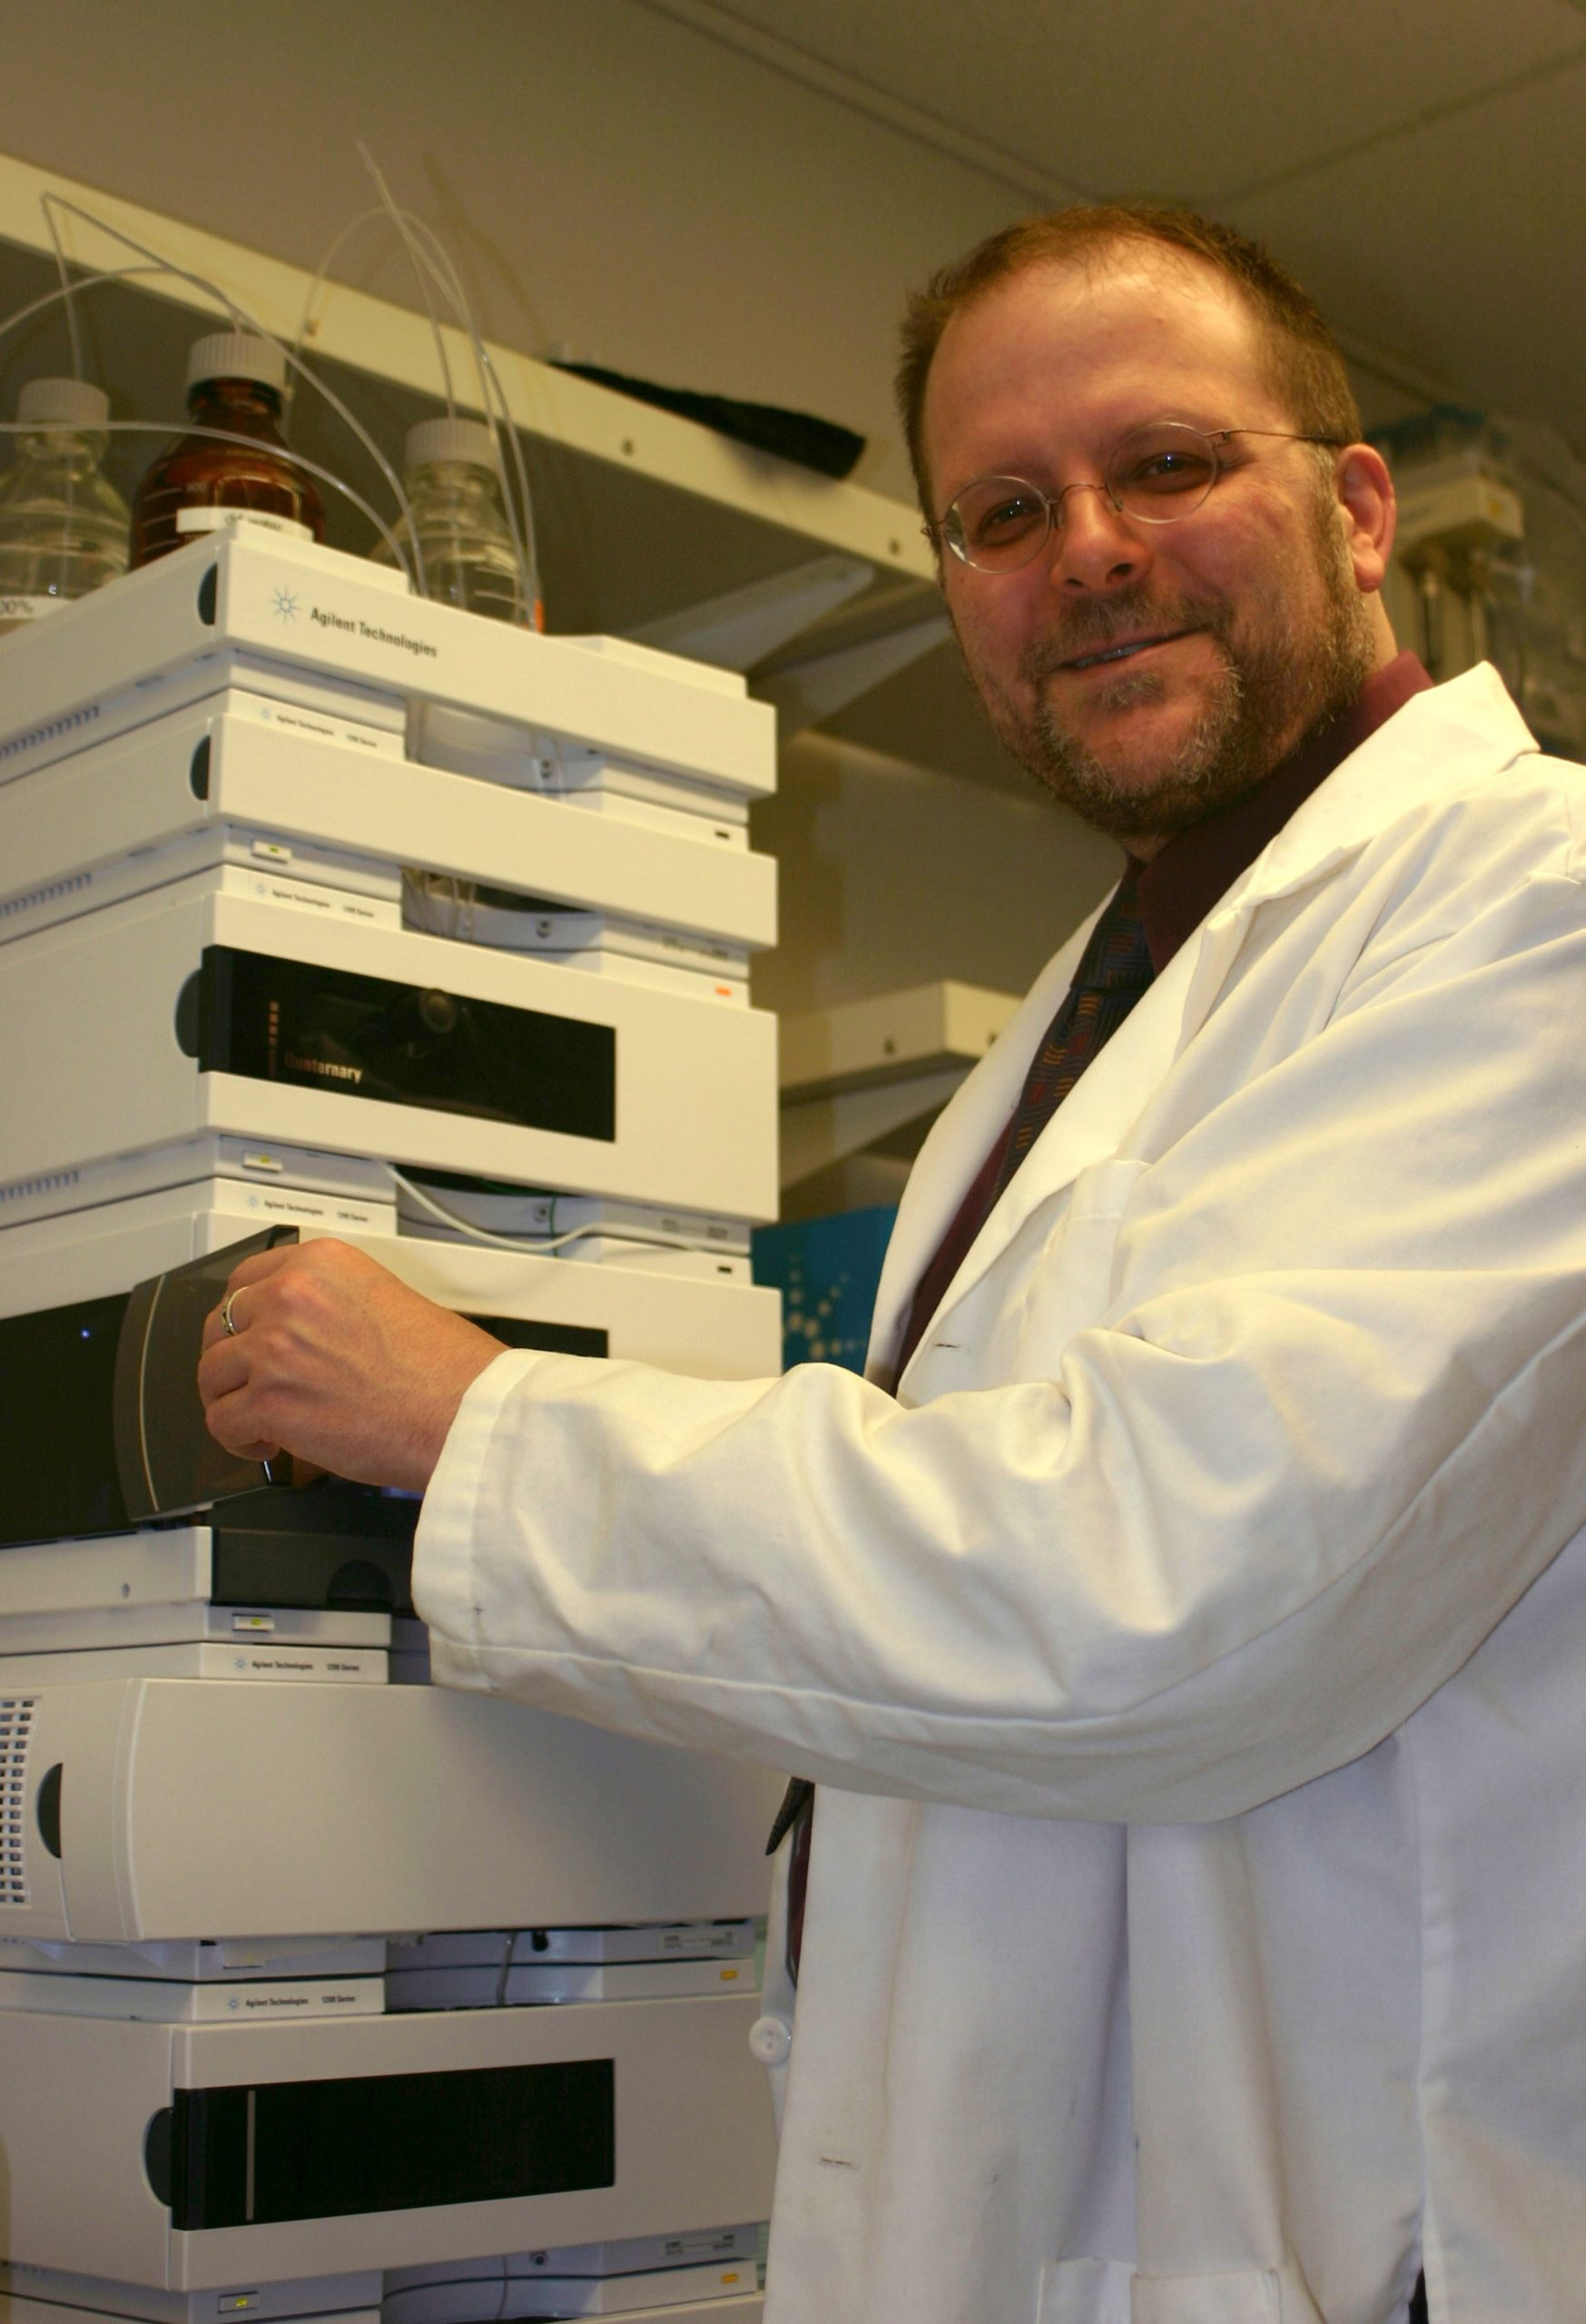 """University of Utah bioengineer Patrick Kiser analyzes polymers used to develop a new kind of AIDS-preventing vaginal gel for eventual use by women in Africa and other impoverished areas. The newly invented gel would be inserted a few hours before sex. During intercourse, polymers -- long, chain-like molecules -- within the gel become """"crosslinked,"""" forming a microscopic mesh that, in lab experiments, physically trapped HIV (human immunodeficiency virus) particles. That would prevent them from reaching and infecting vaginal cells."""